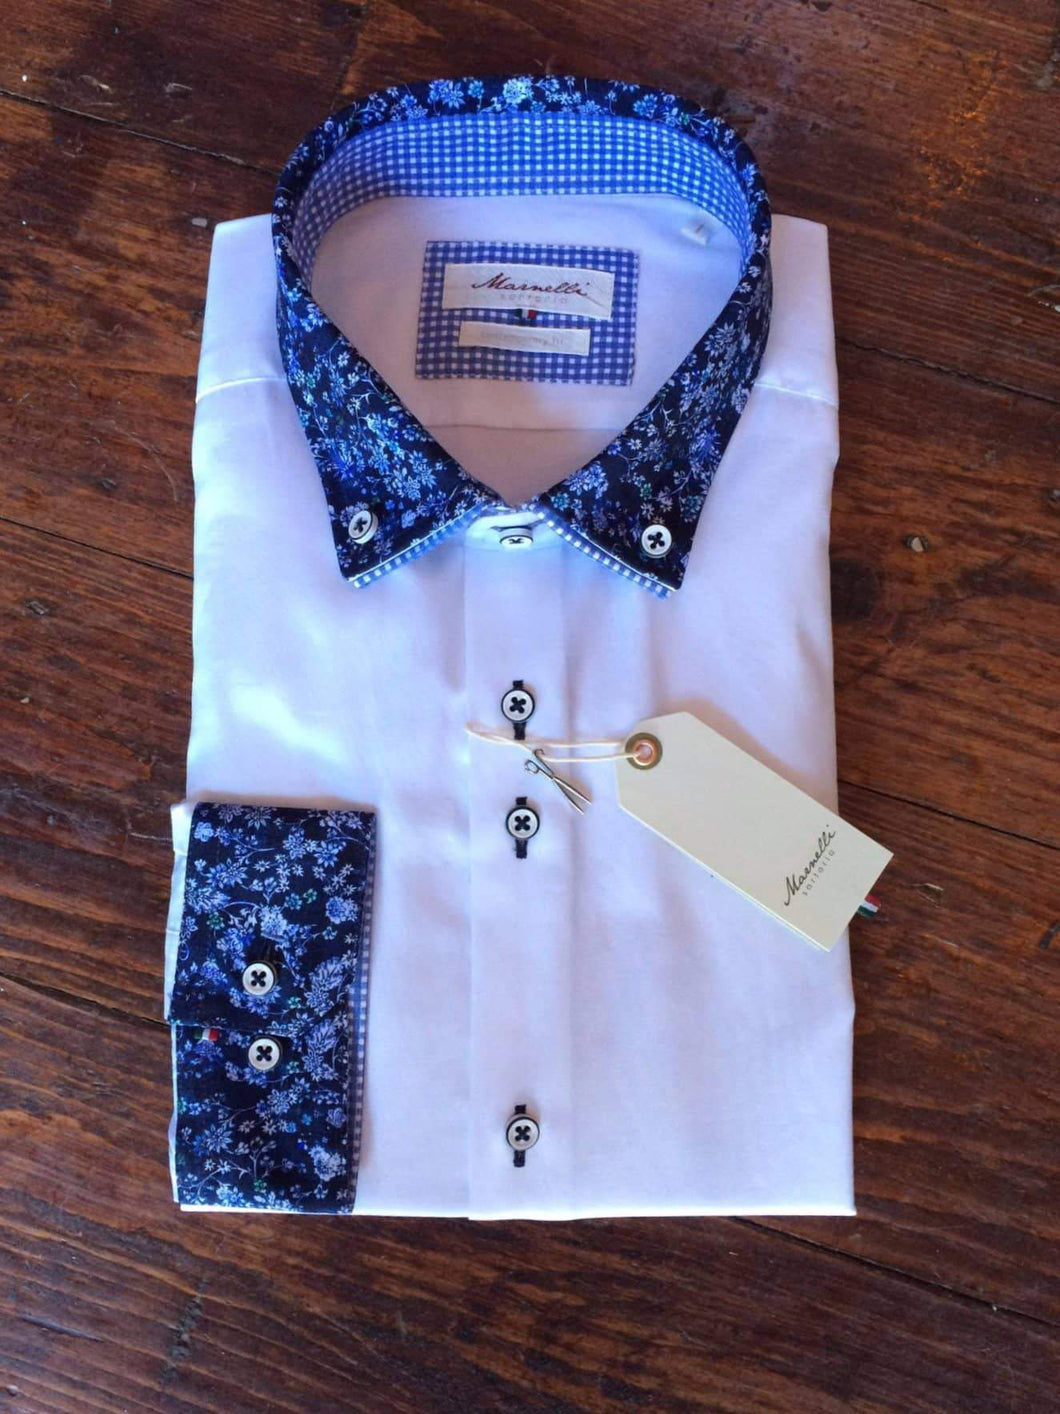 Marnelli White Cotton Shirt With Blue Floral Cut Away Collar And Detailed Cuffs S